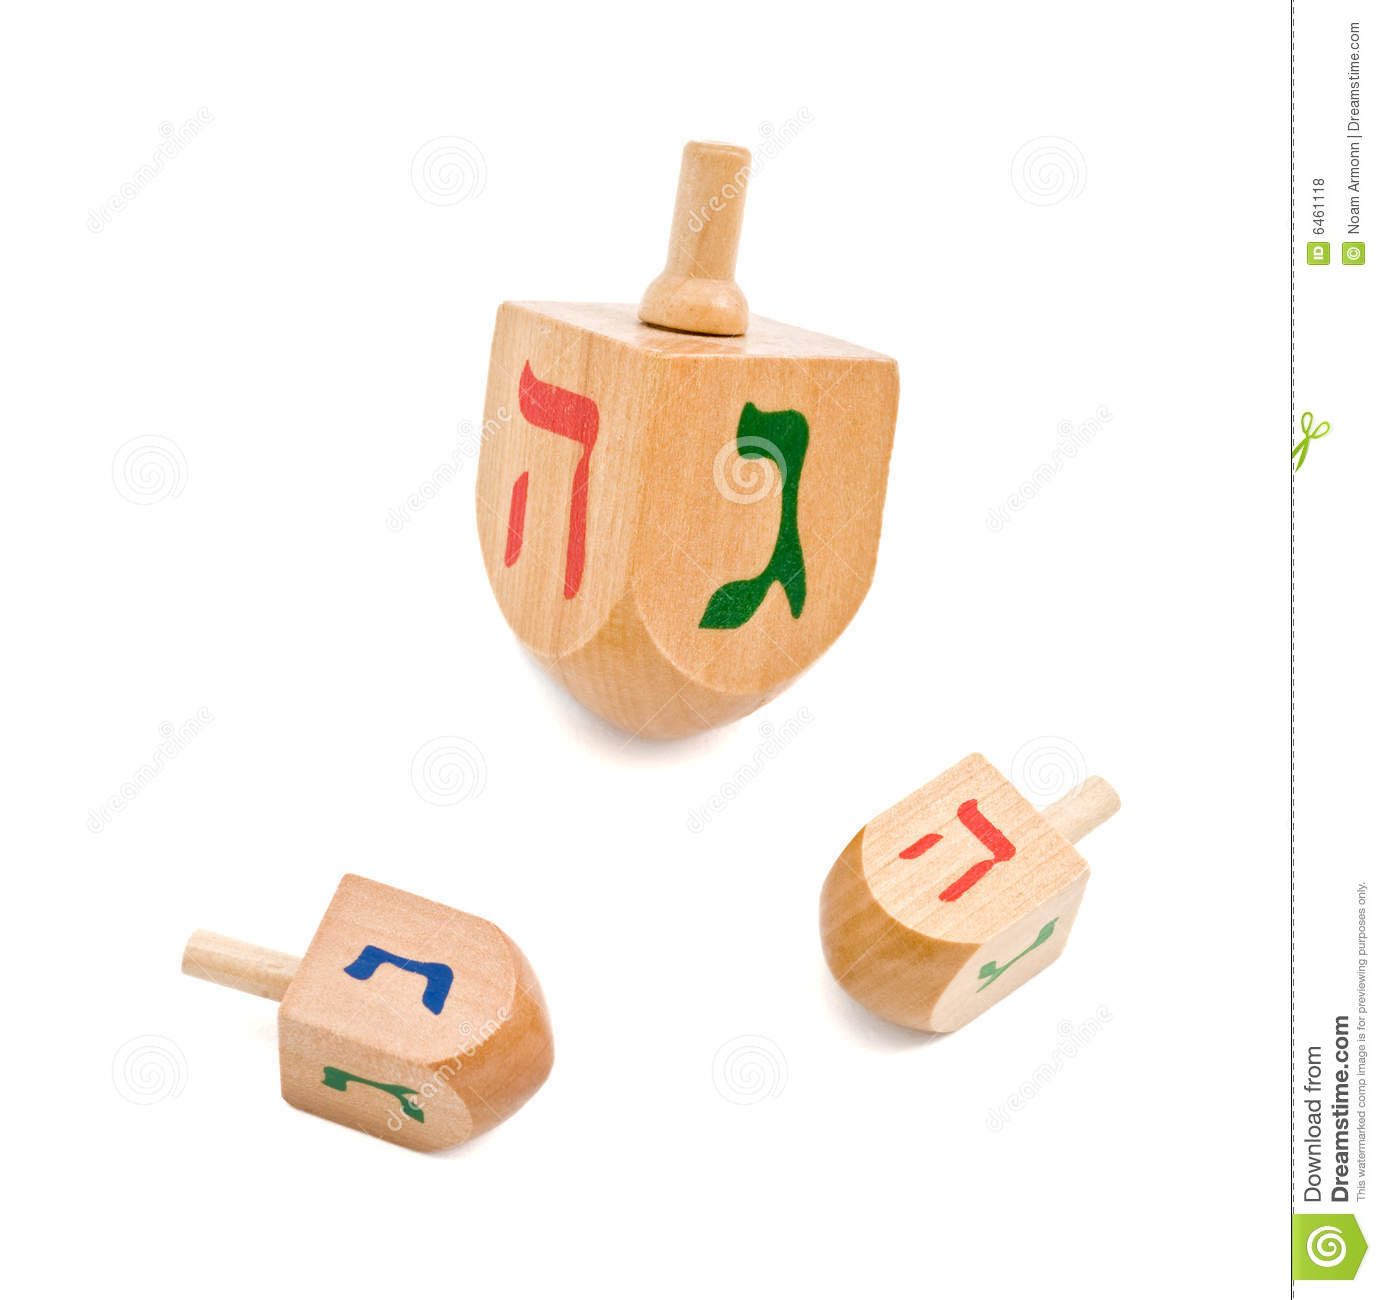 Dreidel Royalty Free Stock Photos - Image: 6461118